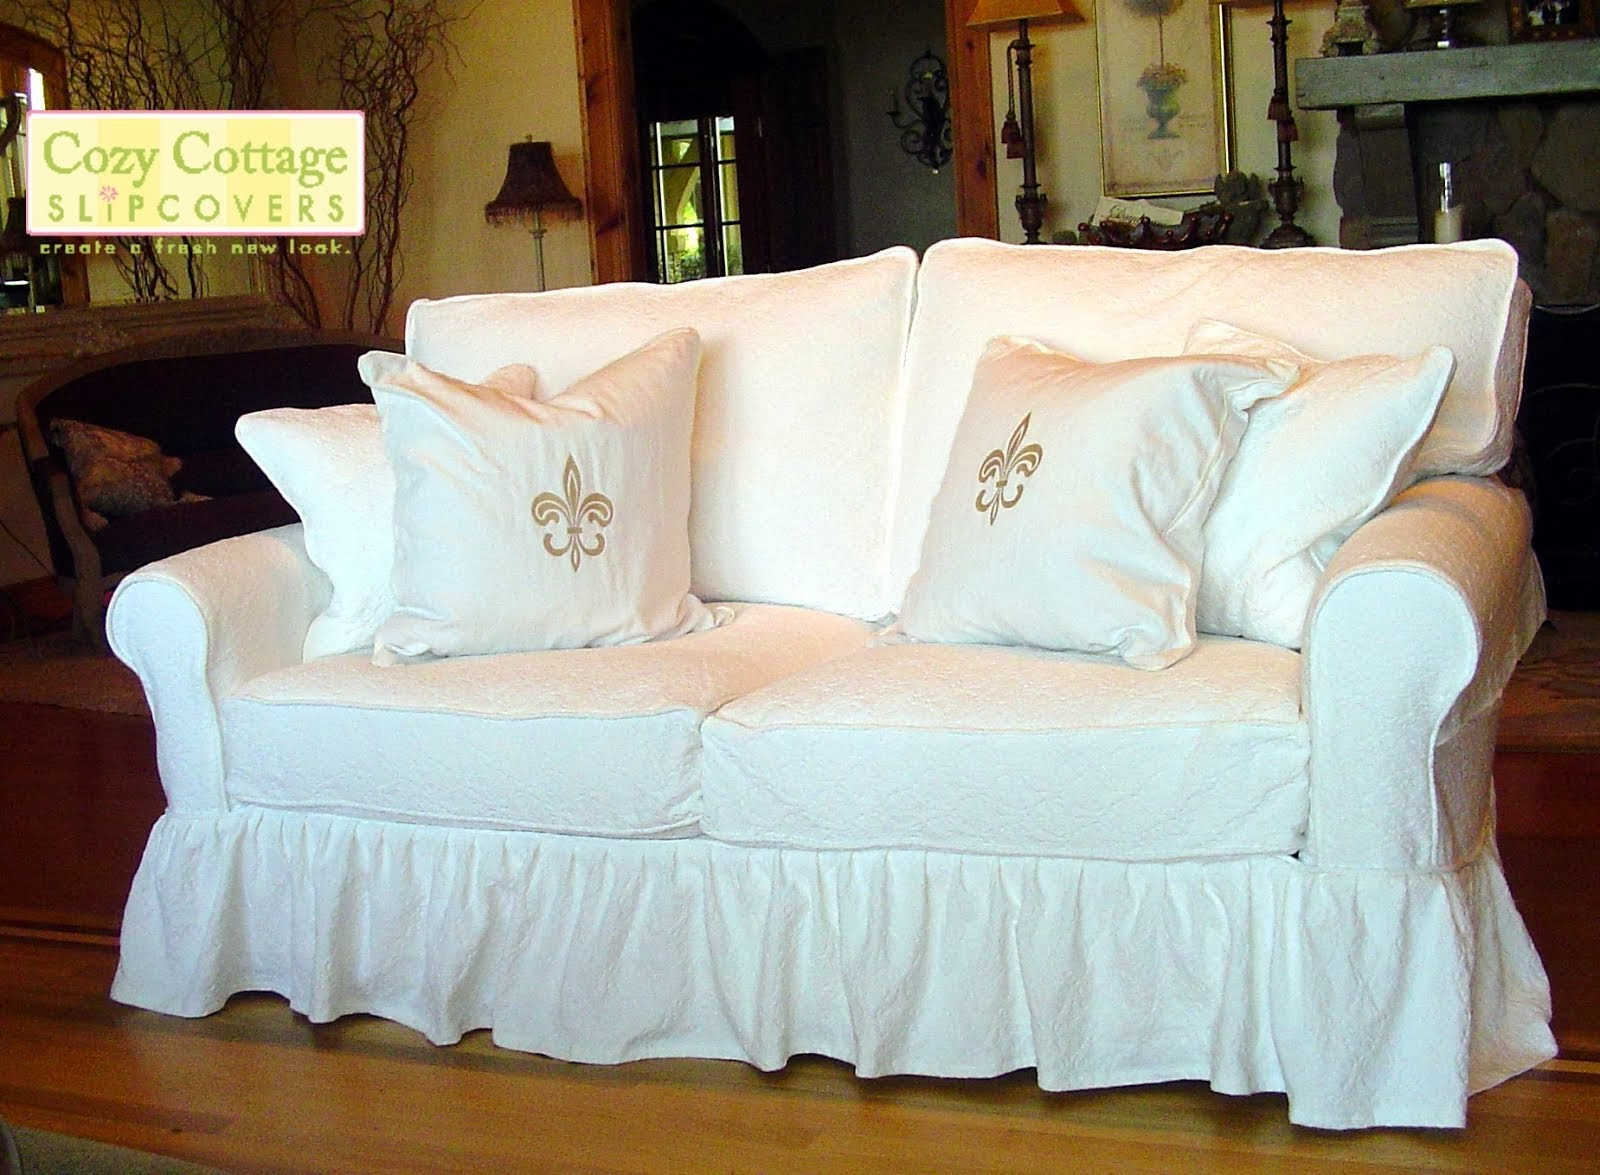 cordings with slip couch news love for marys custom cover and any online made sofa pottery slipcovers seat barn piping covers seater loveseat basic contrast